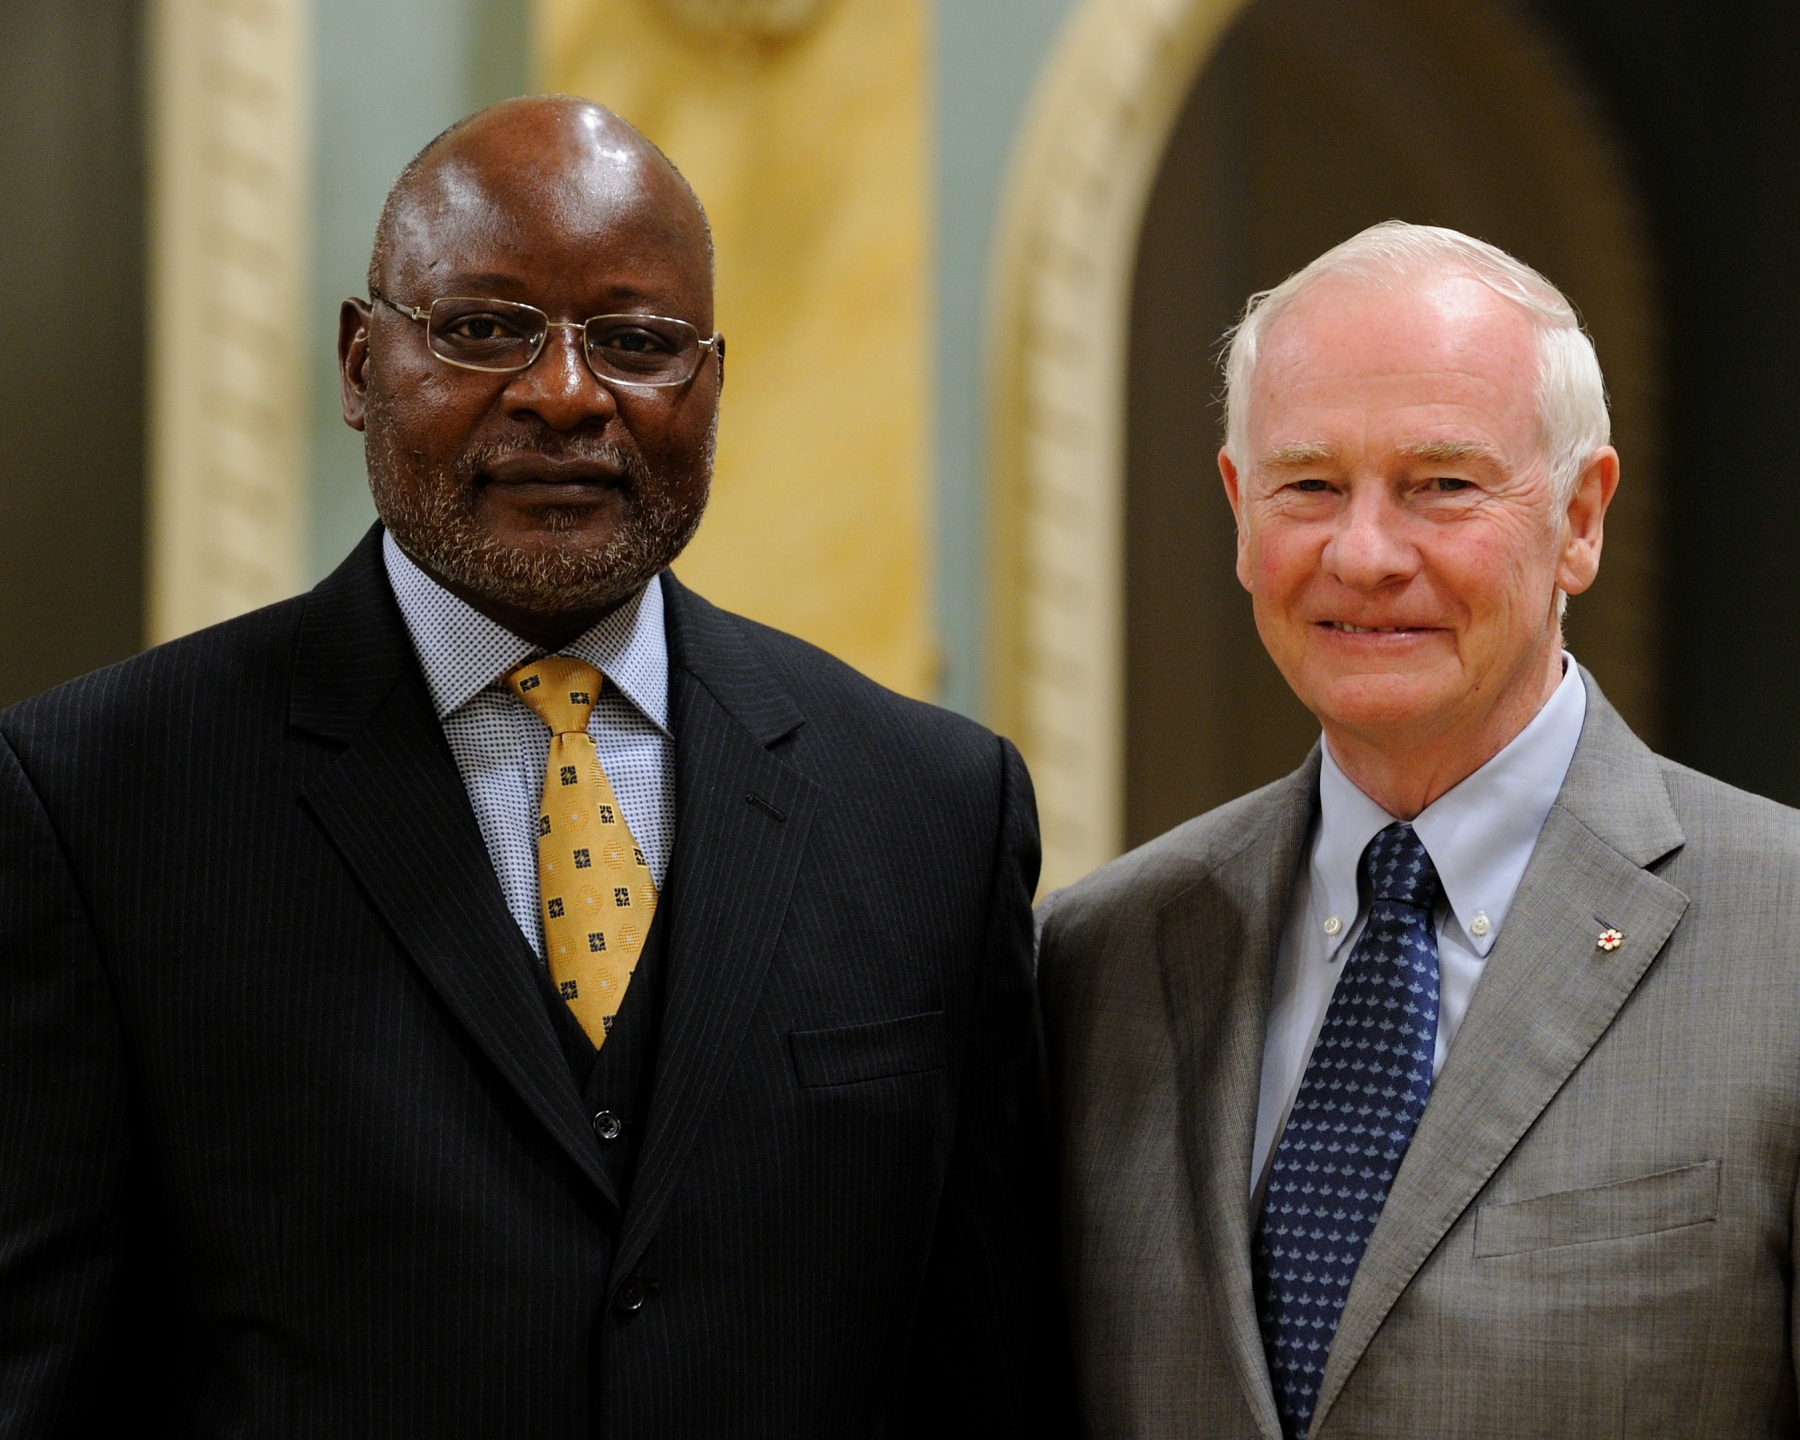 The Governor General received the credentials of His Excellency Martin Andjaba, High Commissioner-designate of the Republic of Namibia.